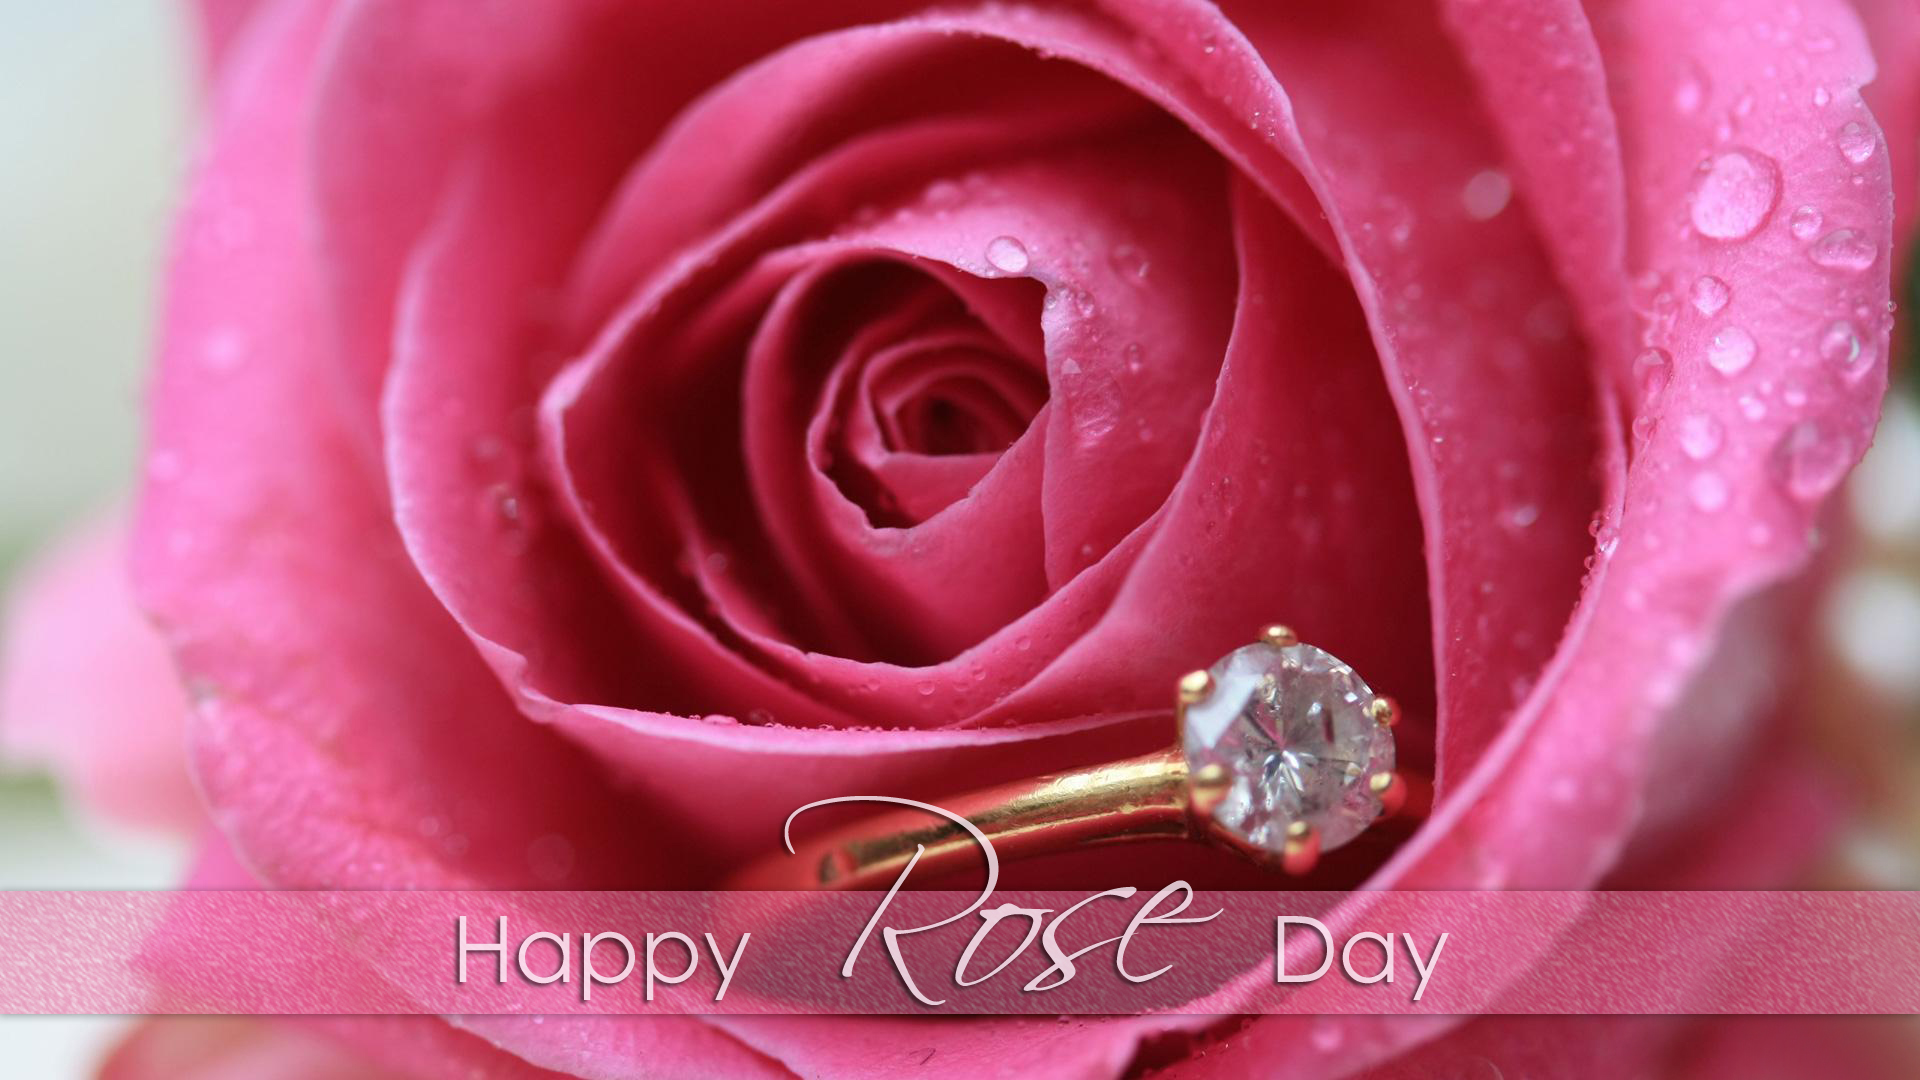 pink-rose-with-happy-rose-day-hd-wallpapers